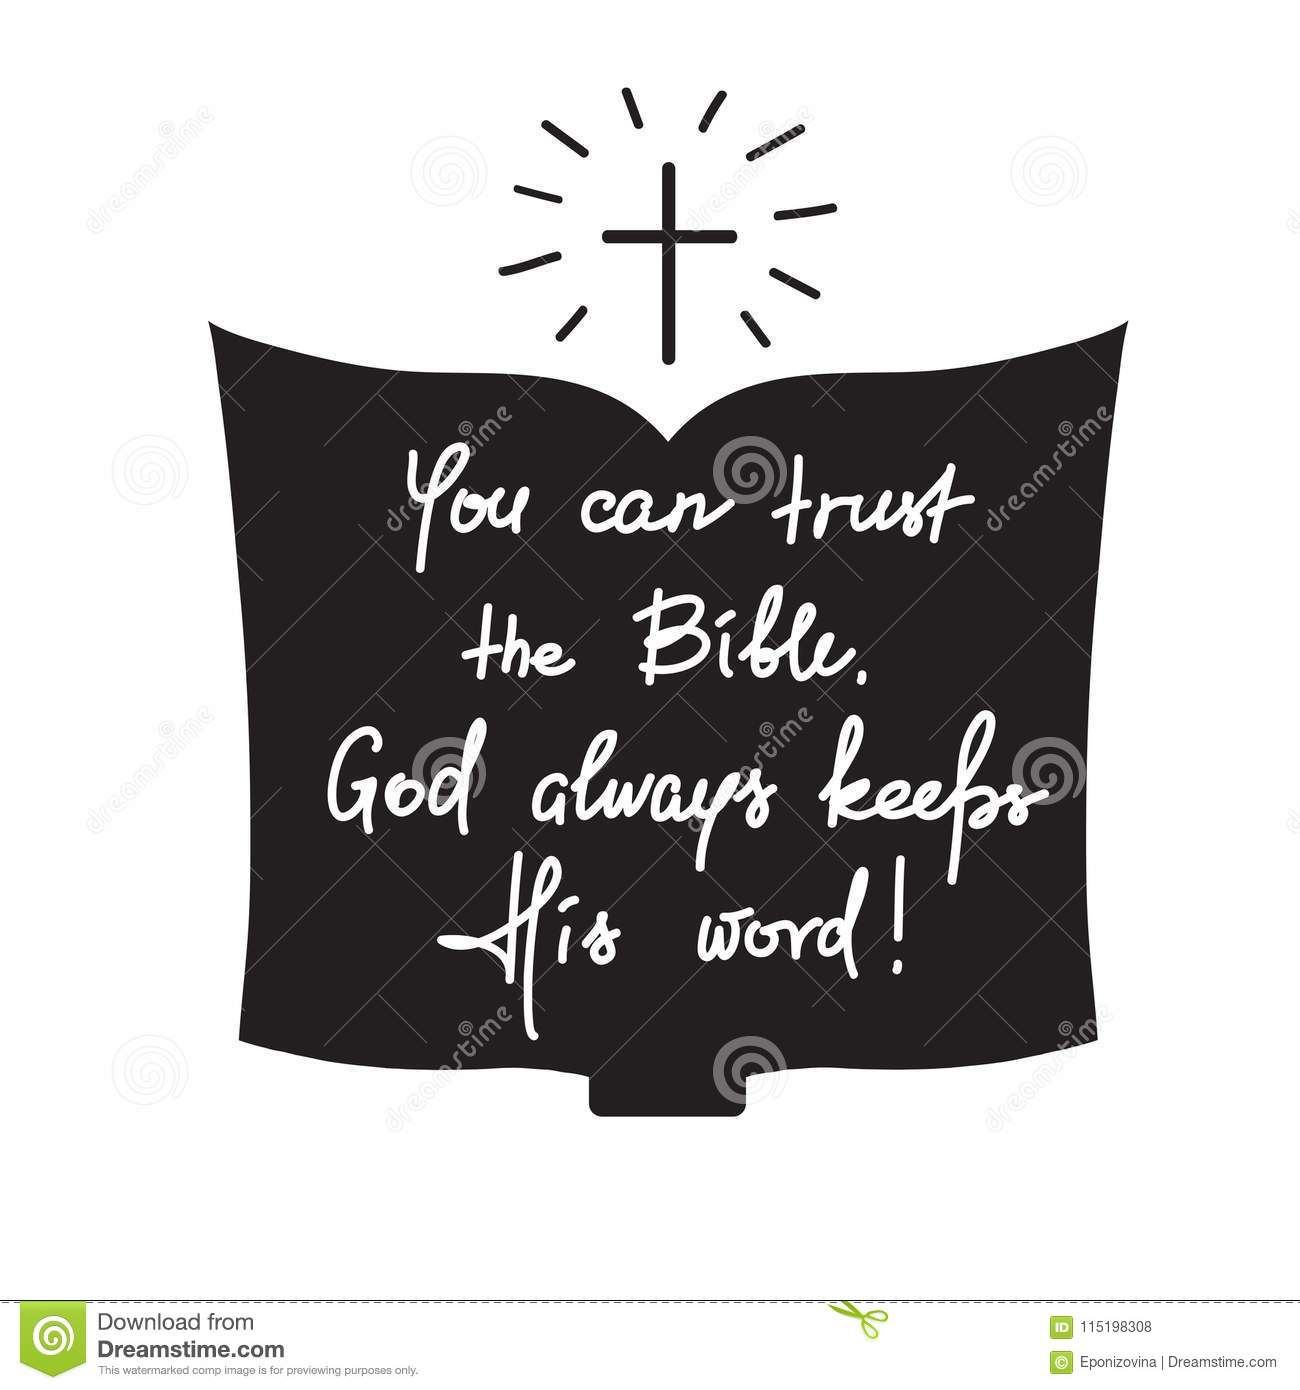 you can trust the bible god always keeps his word motivational